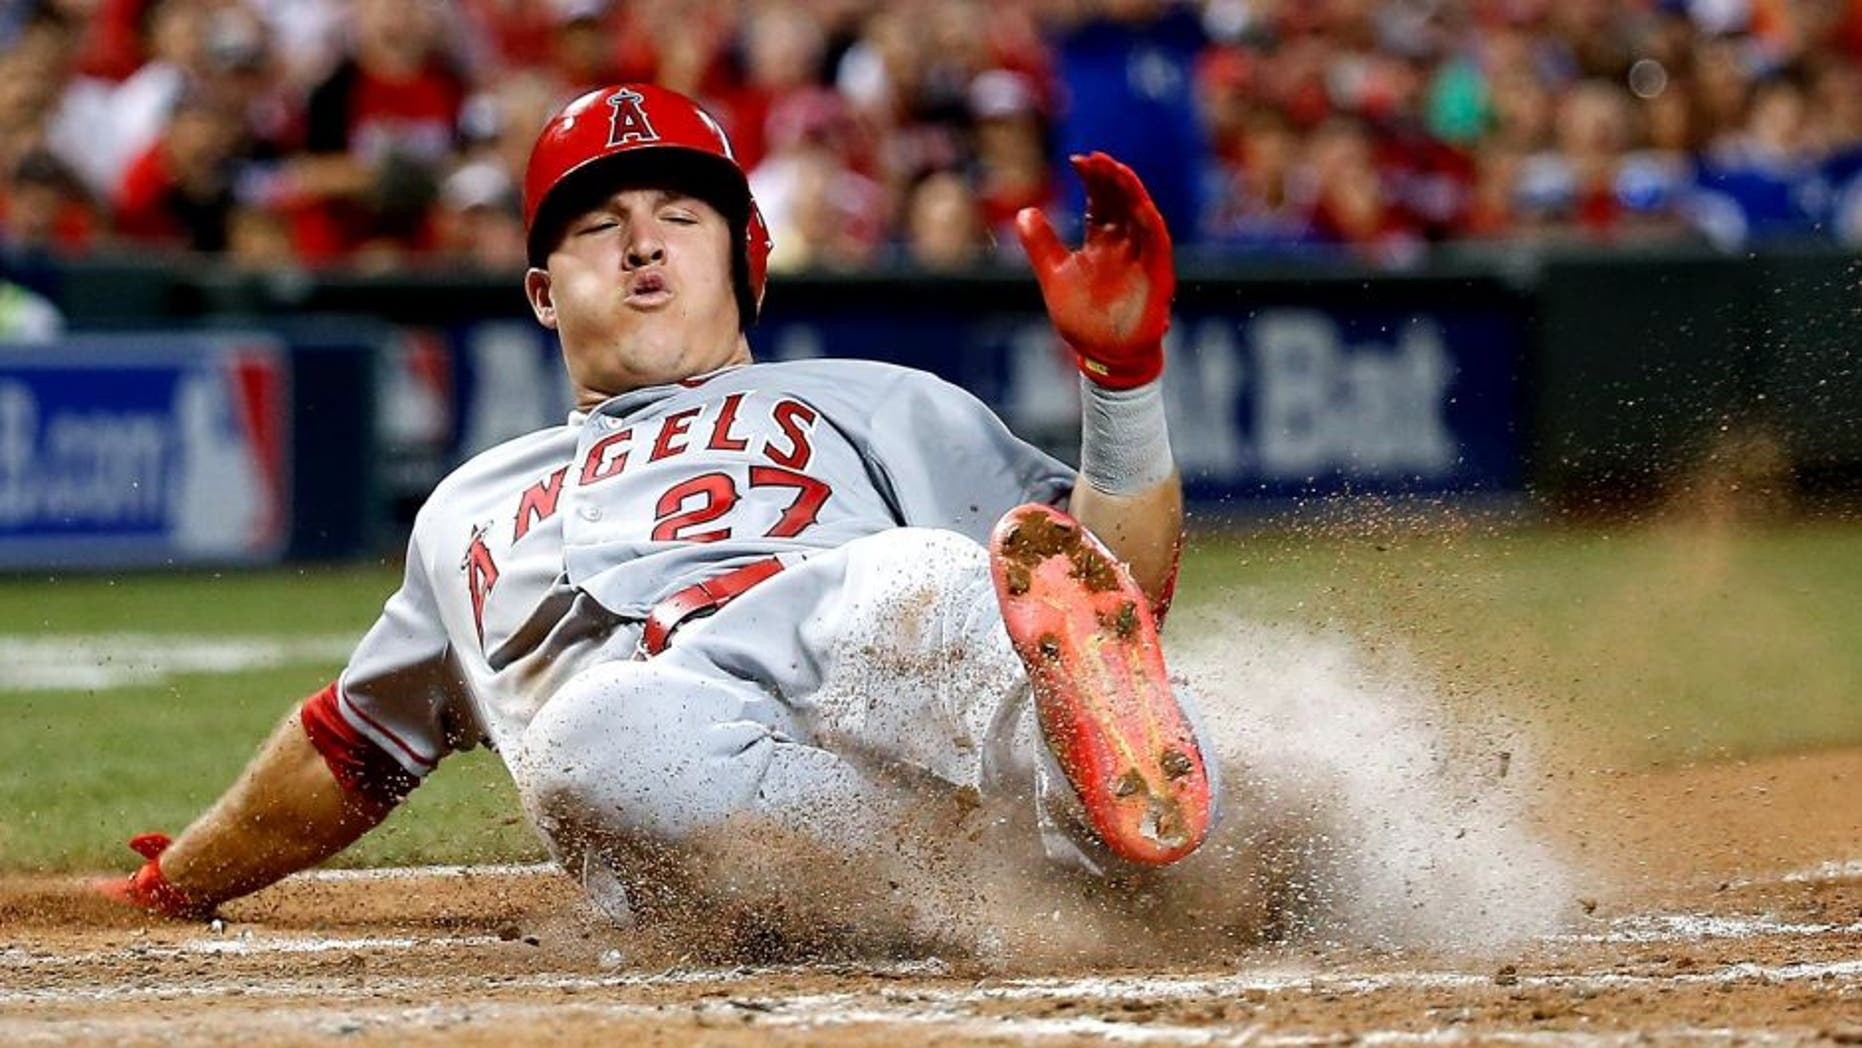 CINCINNATI, OH - JULY 14: American League All-Star Mike Trout #27 of the Los Angeles Angels of Anaheim slides home to score off of American League All-Star Prince Fielder #84 of the Texas Rangers single to left field against National League All-Star Clayton Kershaw #22 of the Los Angeles Dodgers during the 86th MLB All-Star Game at the Great American Ball Park on July 14, 2015 in Cincinnati, Ohio. (Photo by Rob Carr/Getty Images)